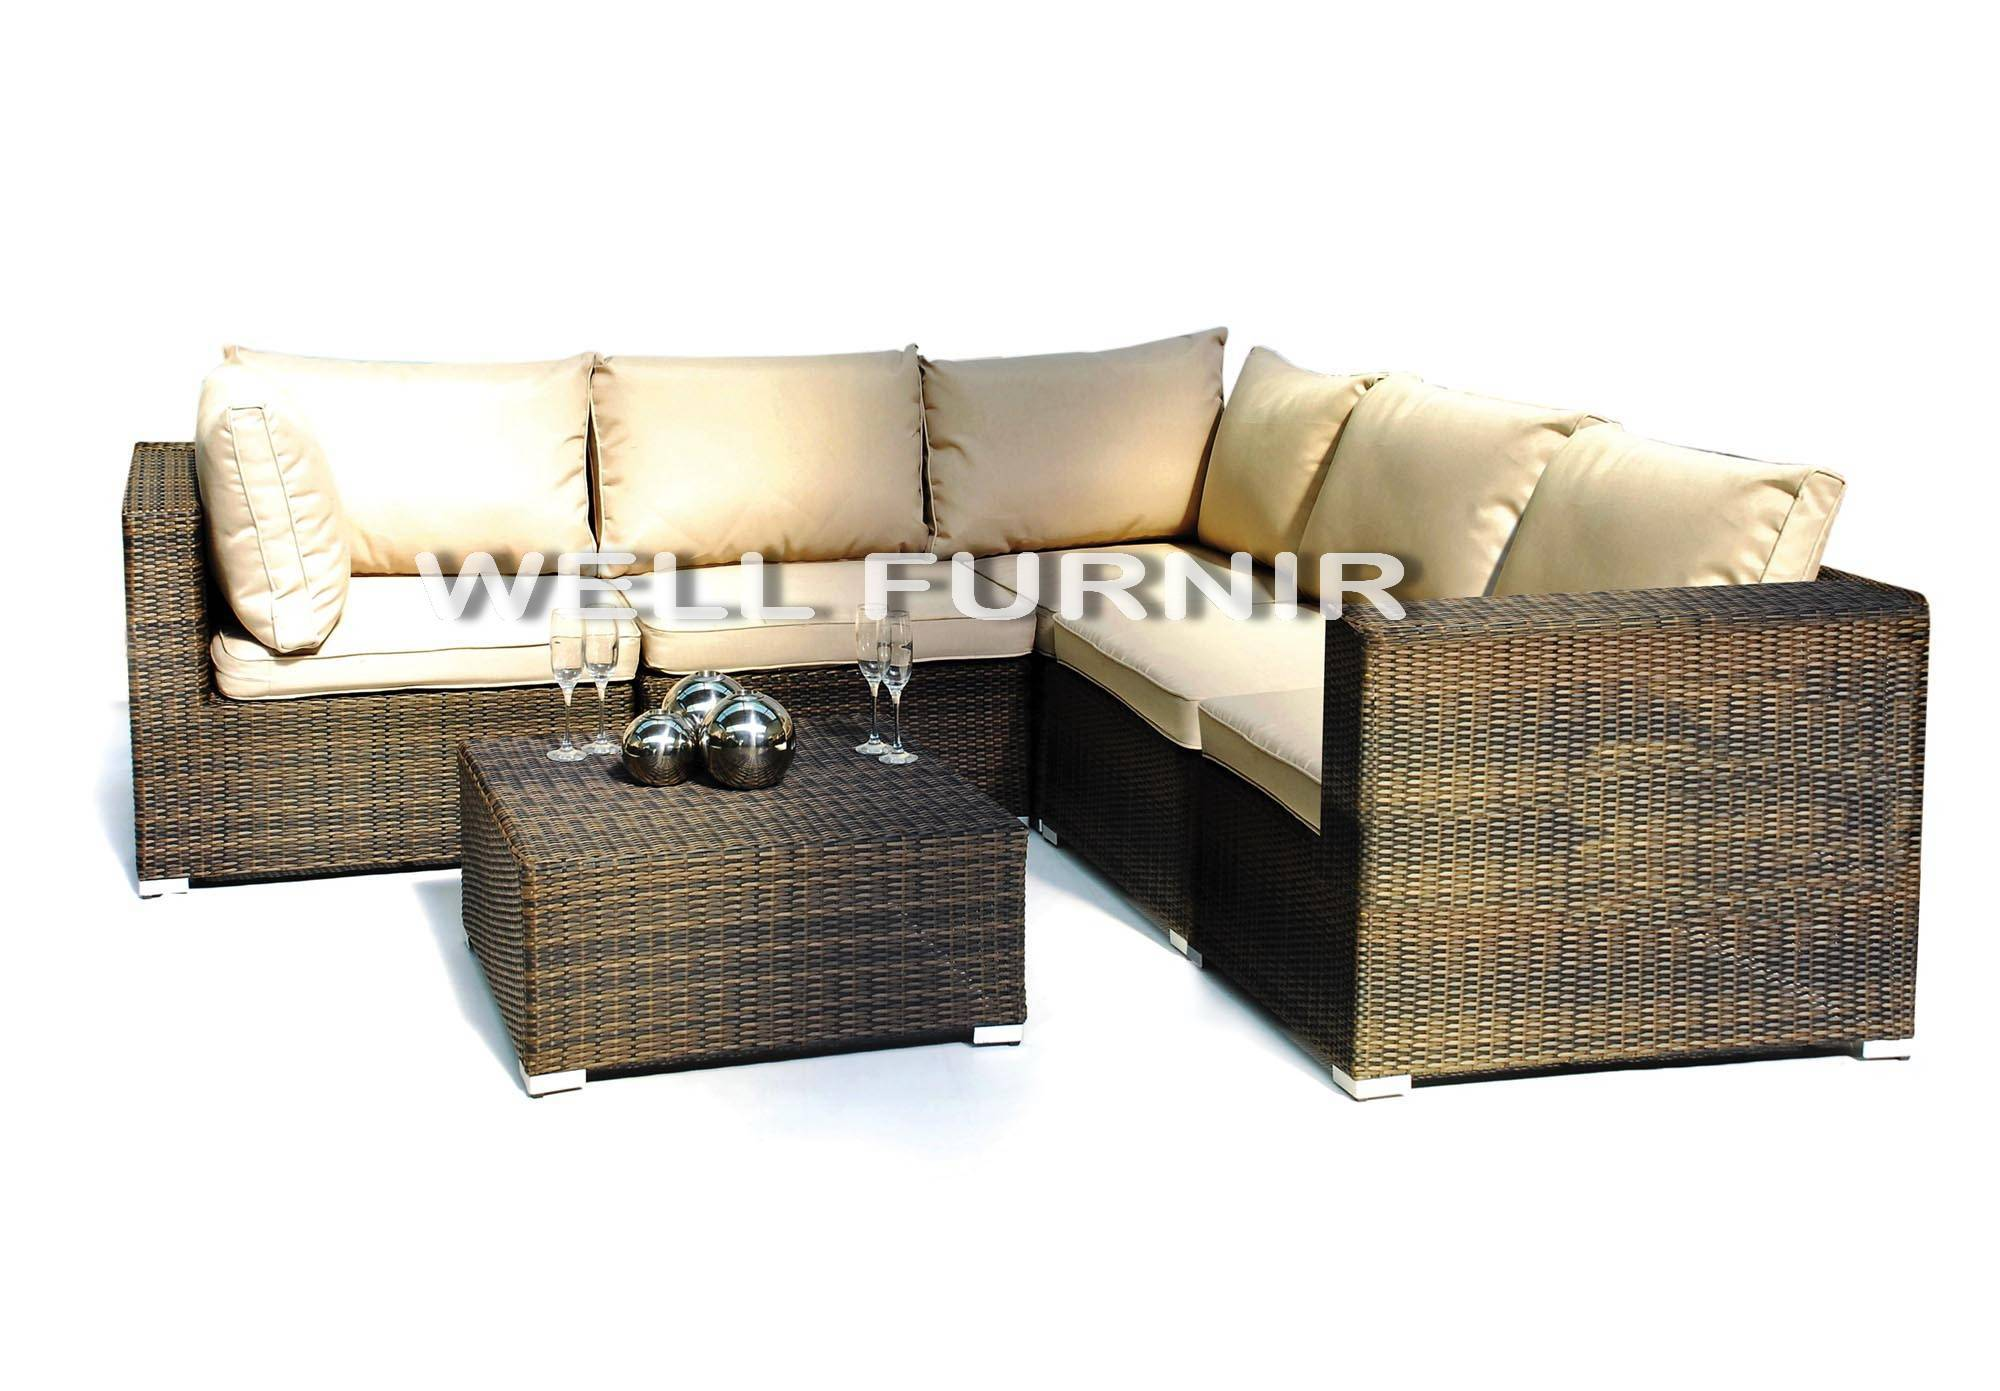 Well Furnir Company Limited Supply Rattan Wicker Sectional Sofa Set WF-21007